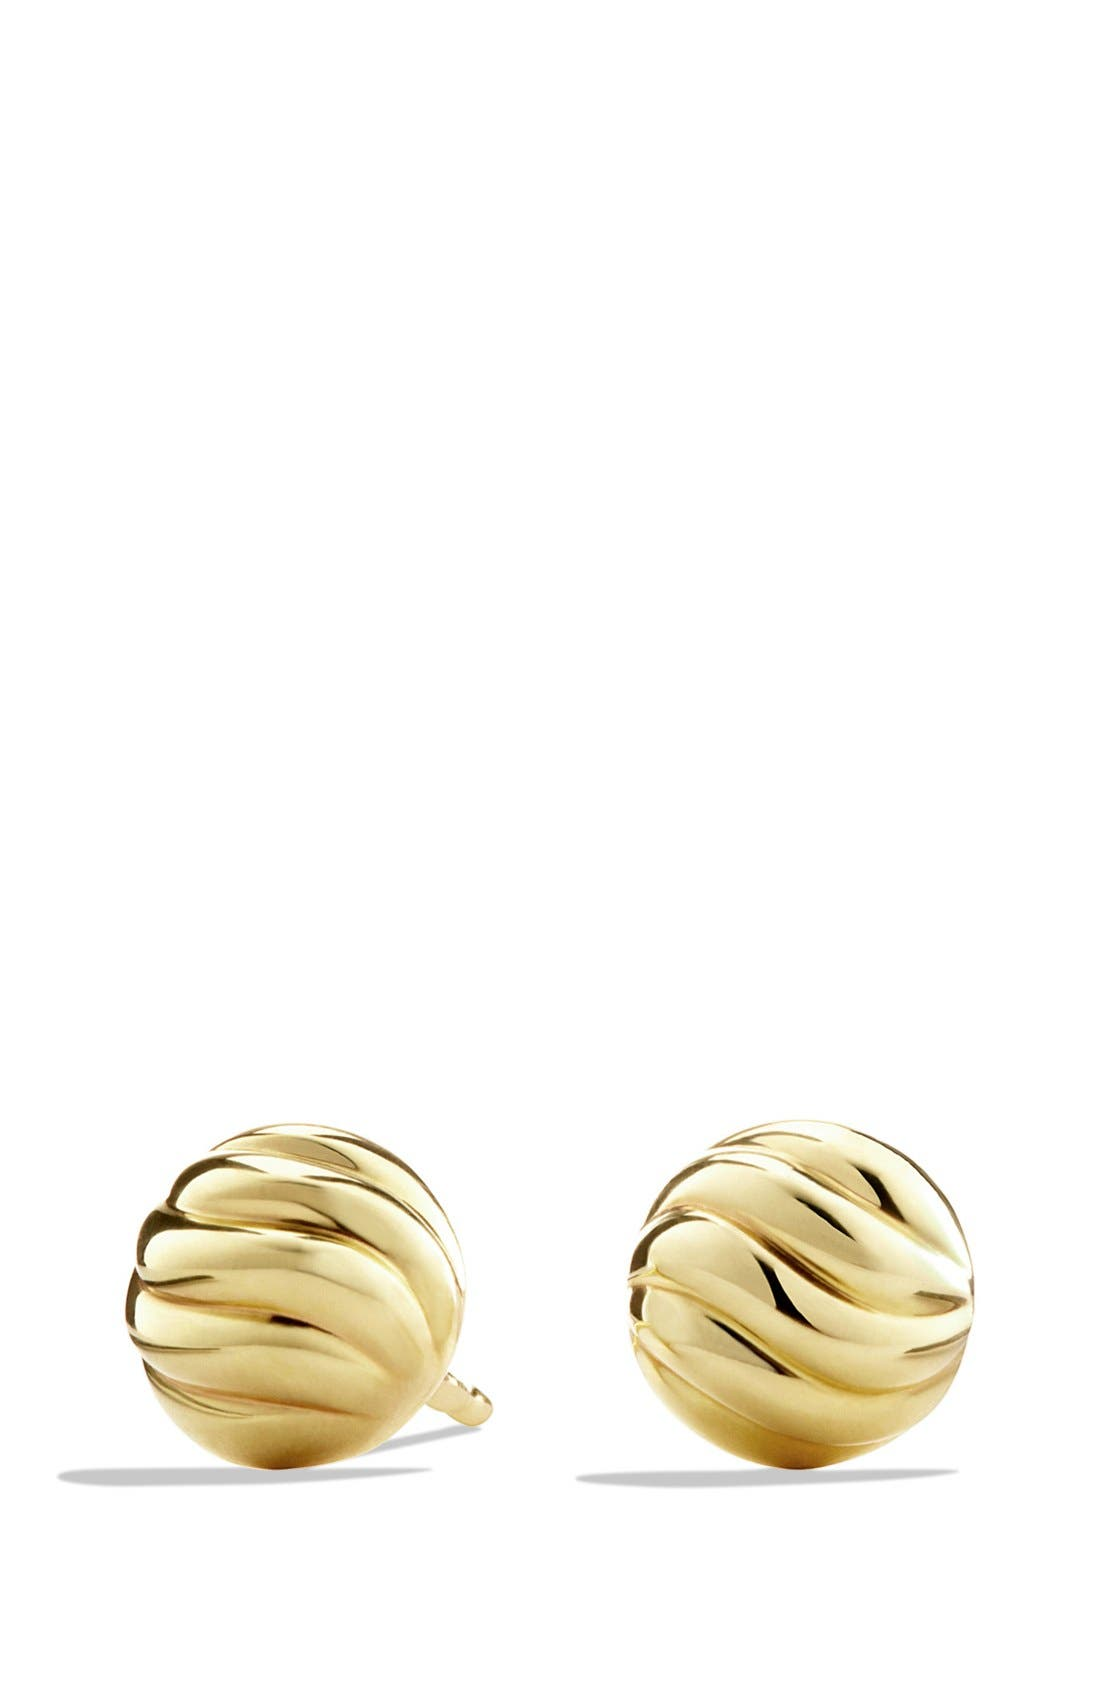 'Sculpted Cable' Stud Earring in Gold,                             Main thumbnail 1, color,                             GOLD